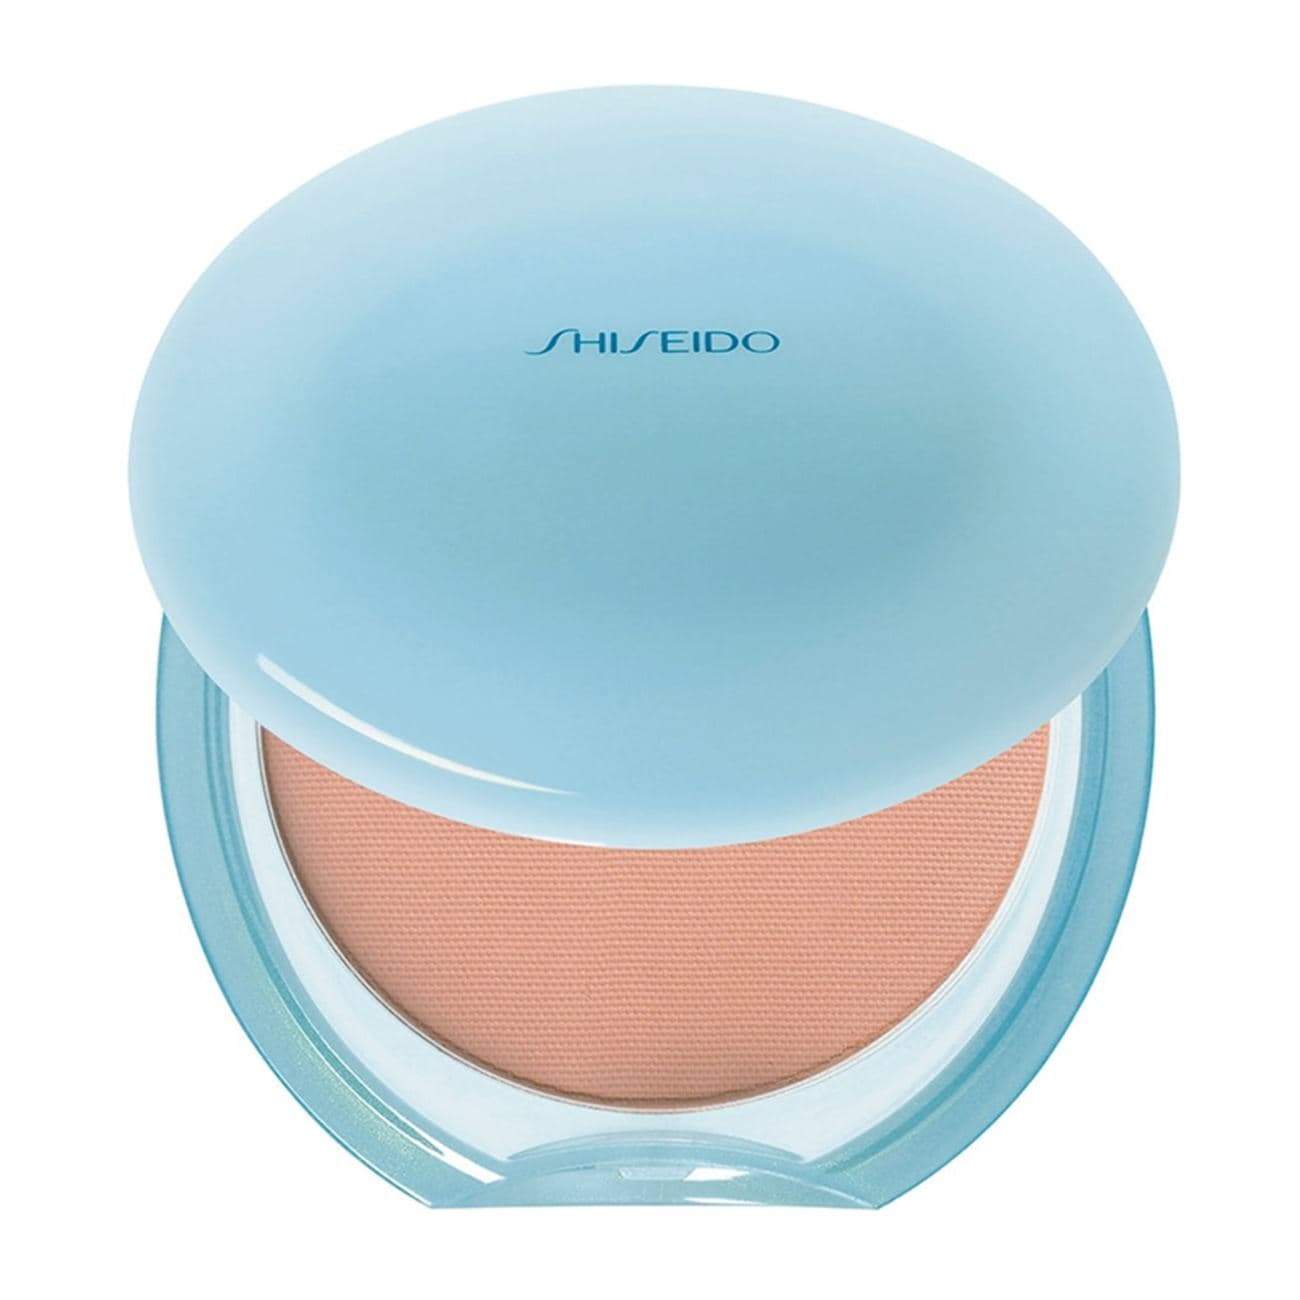 Pureness Matifying Compact Oil-Free Refill